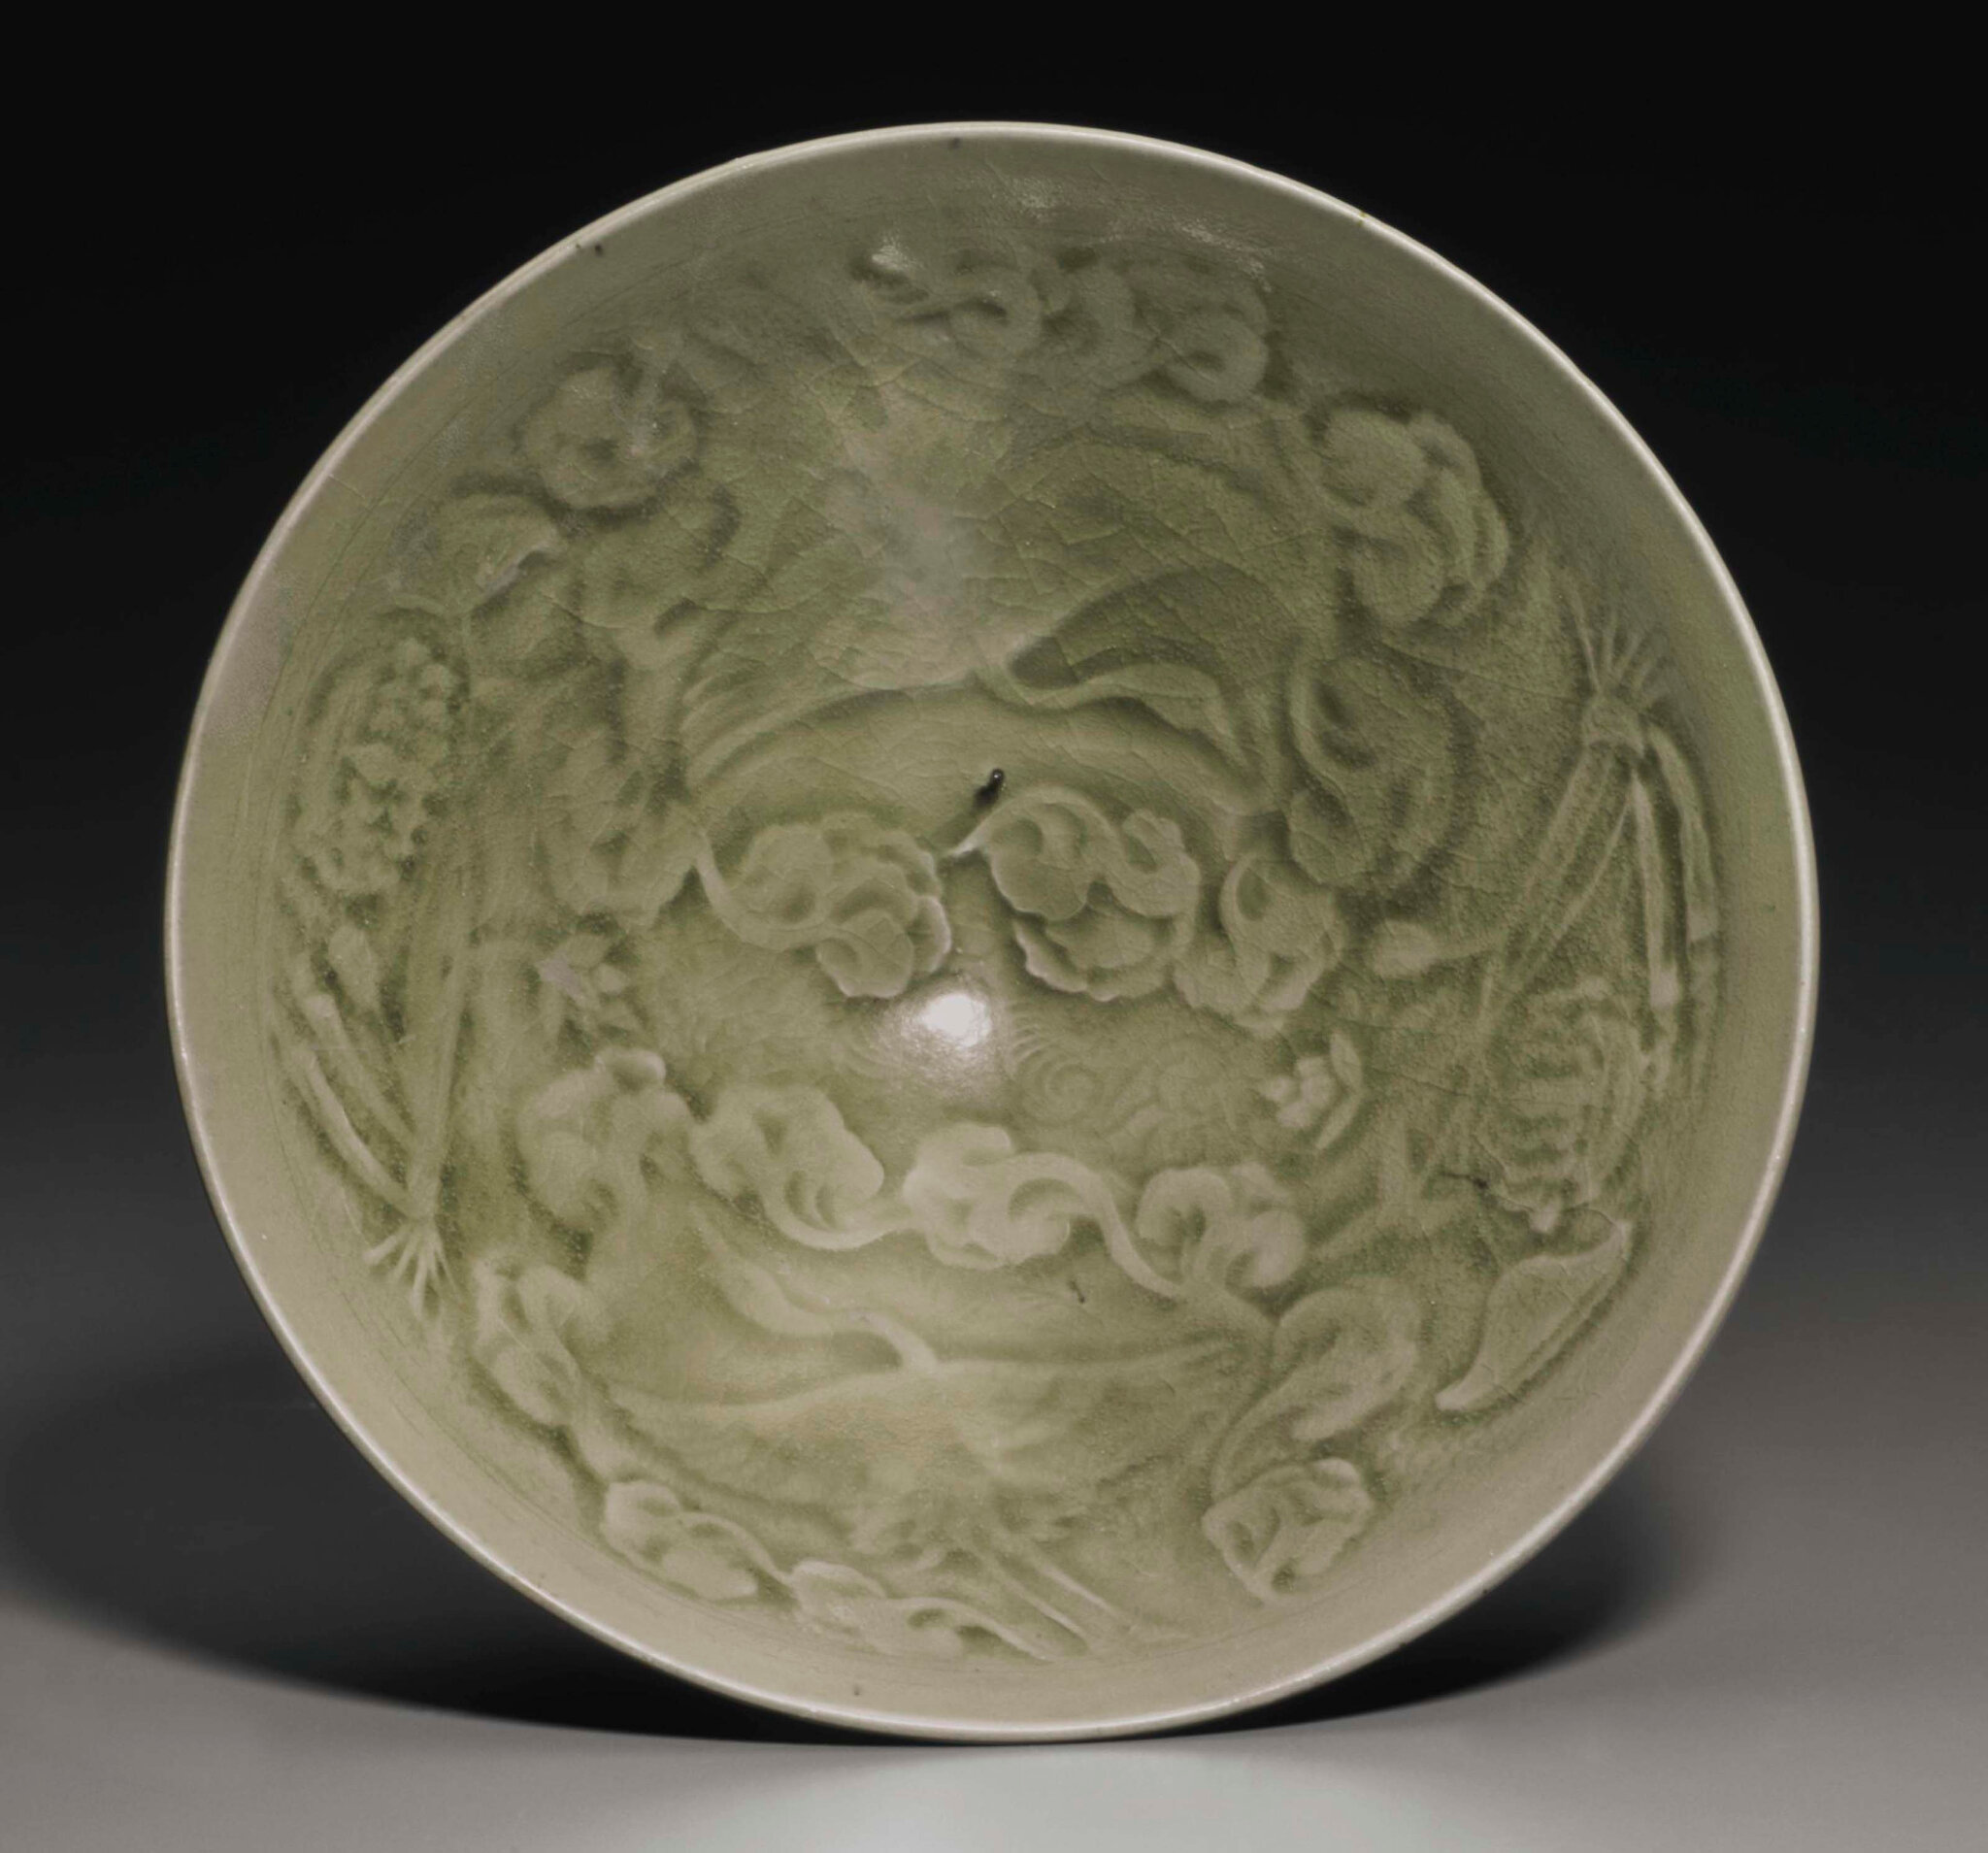 A rare large Yaozhou celadon molded conical bowl, China, Northern Song-Jin Dynasty, 11th-12th century